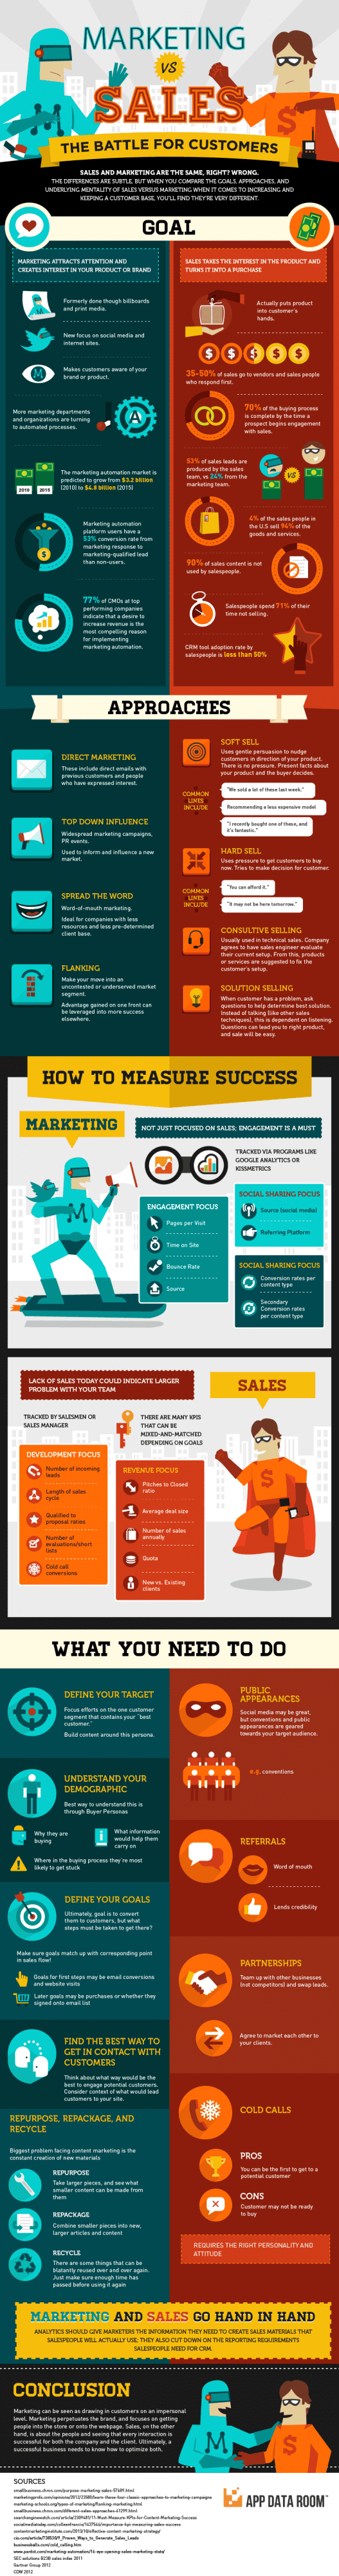 marketing-vs-sales-the-revenue-battle-infographic